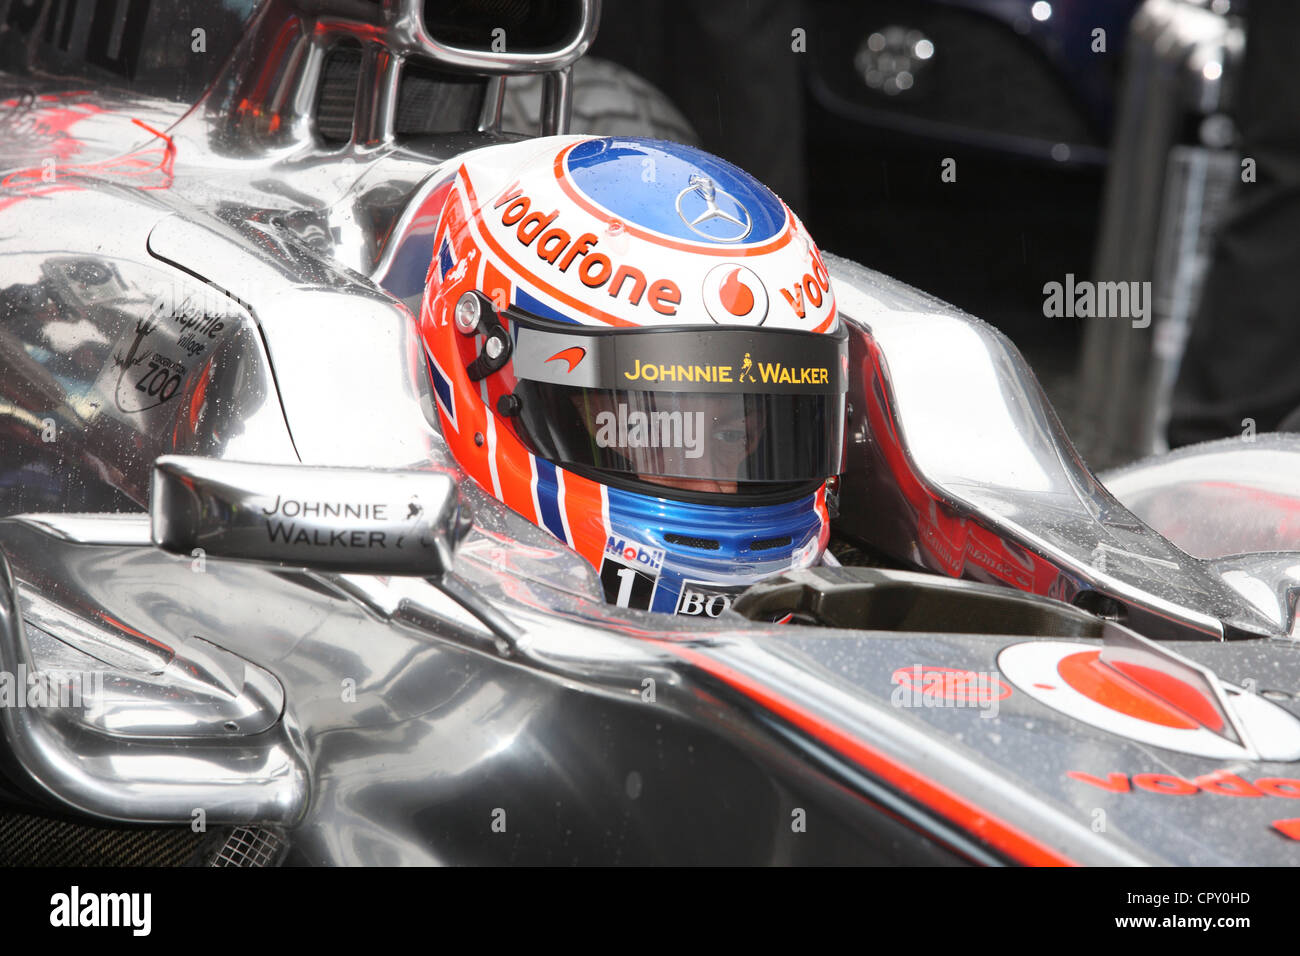 Jenson Button in his formula one car - Stock Image